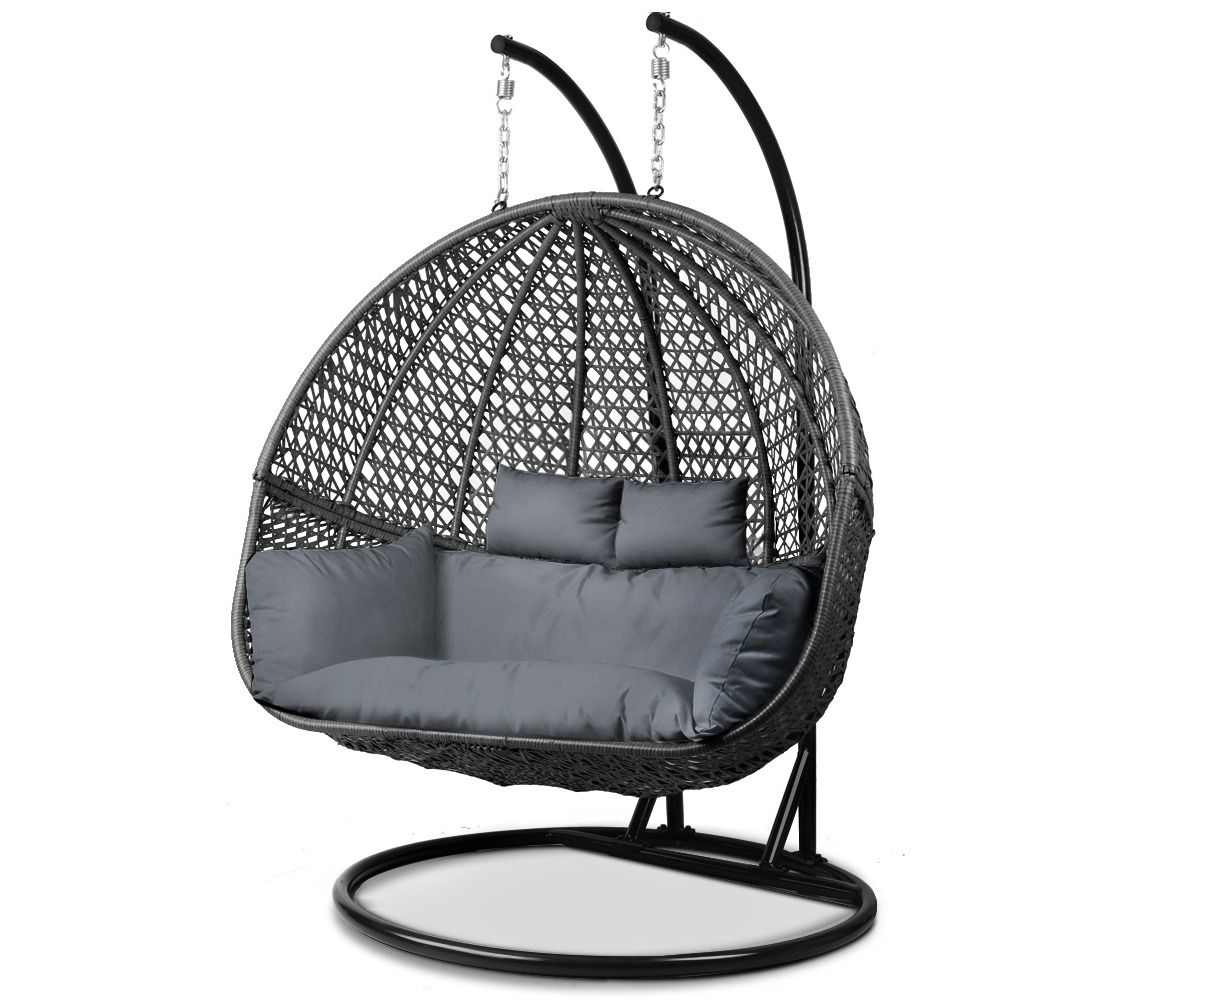 Excellent Gardeon Stylish Outdoor Furniture Wicker Hanging Swing Egg Caraccident5 Cool Chair Designs And Ideas Caraccident5Info